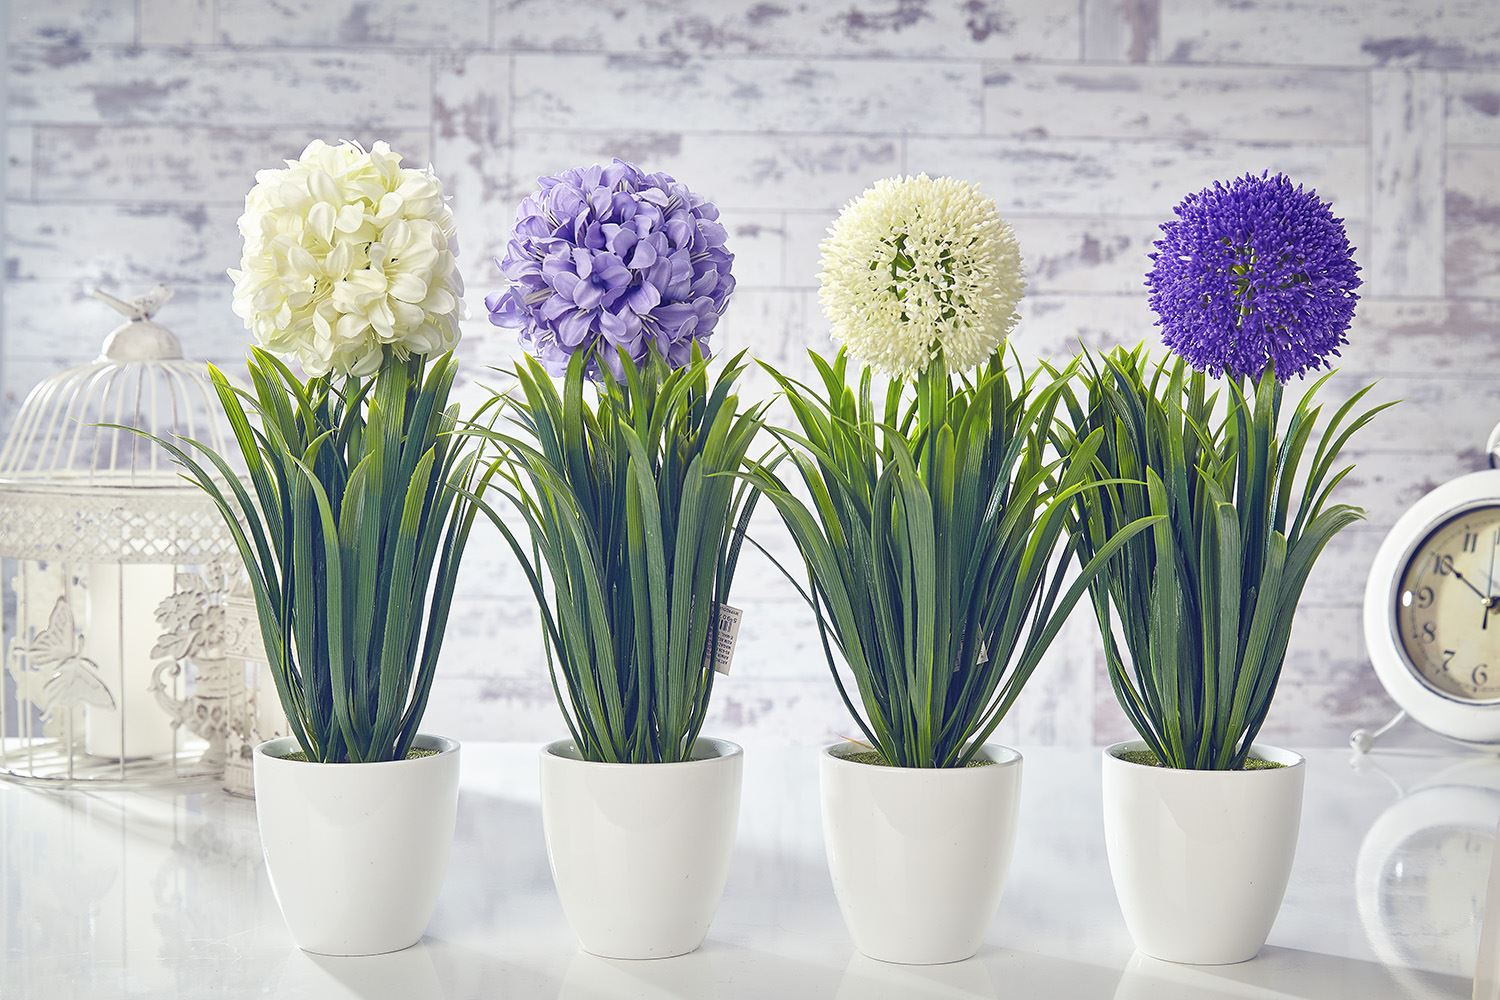 Artificial garlic flowers plants in pot home decor garden for Home decorations with flowers